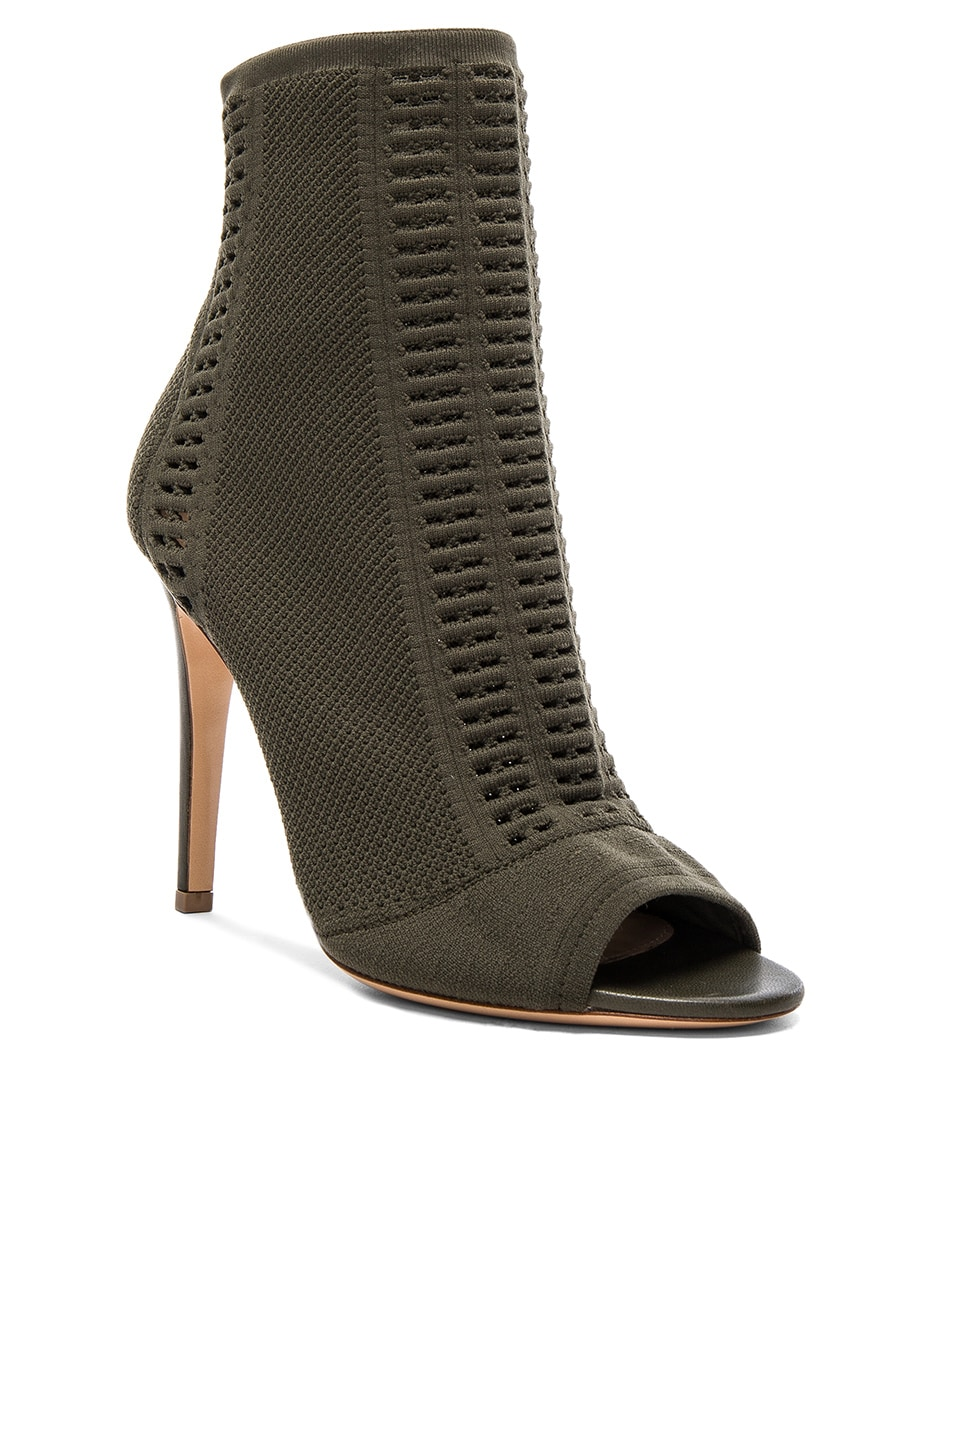 Image 2 of Gianvito Rossi Knit Booties in Army